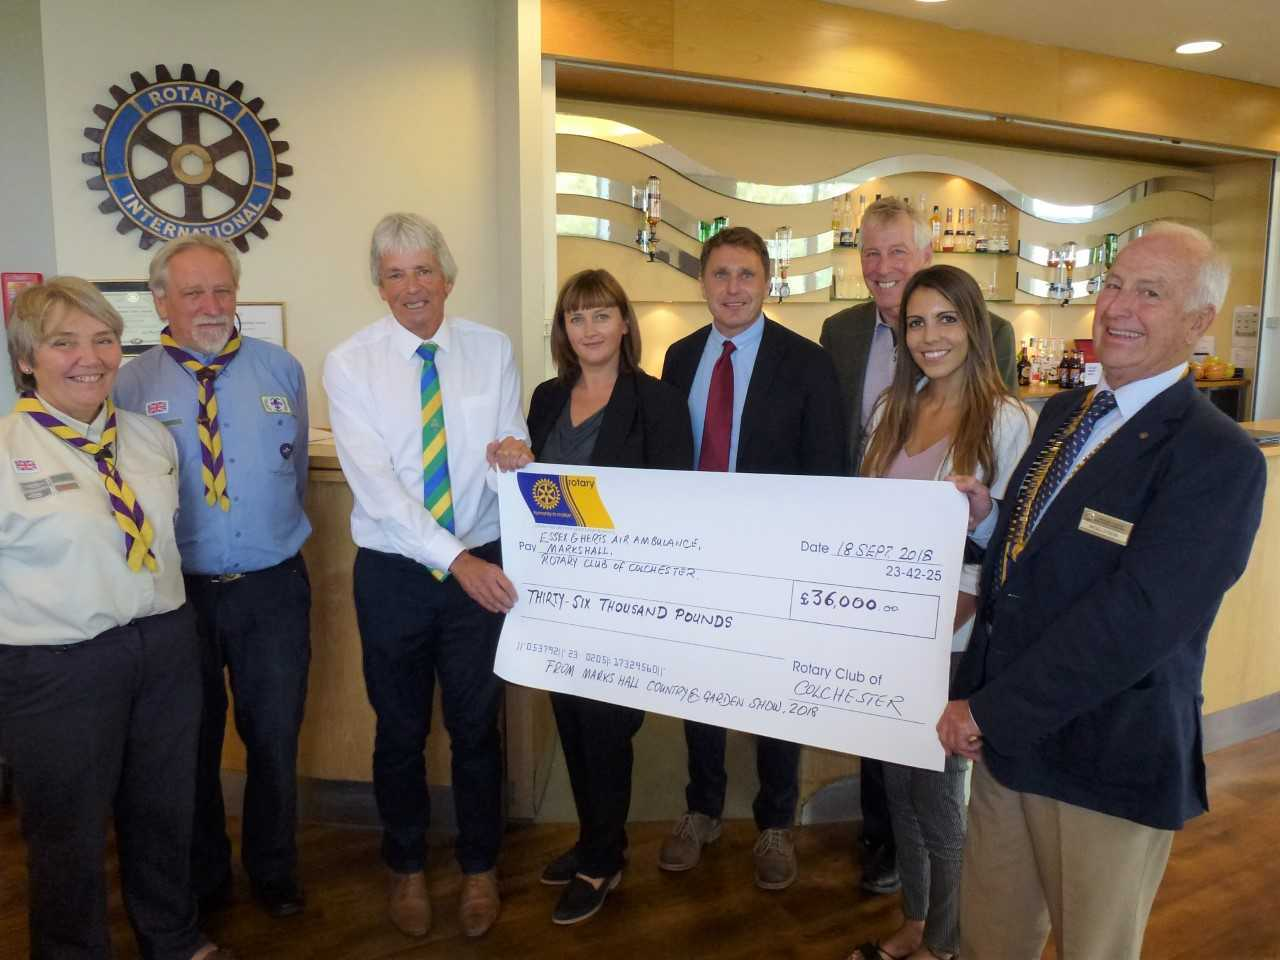 Donation - the Rotary Club of Colchester handed over cheques